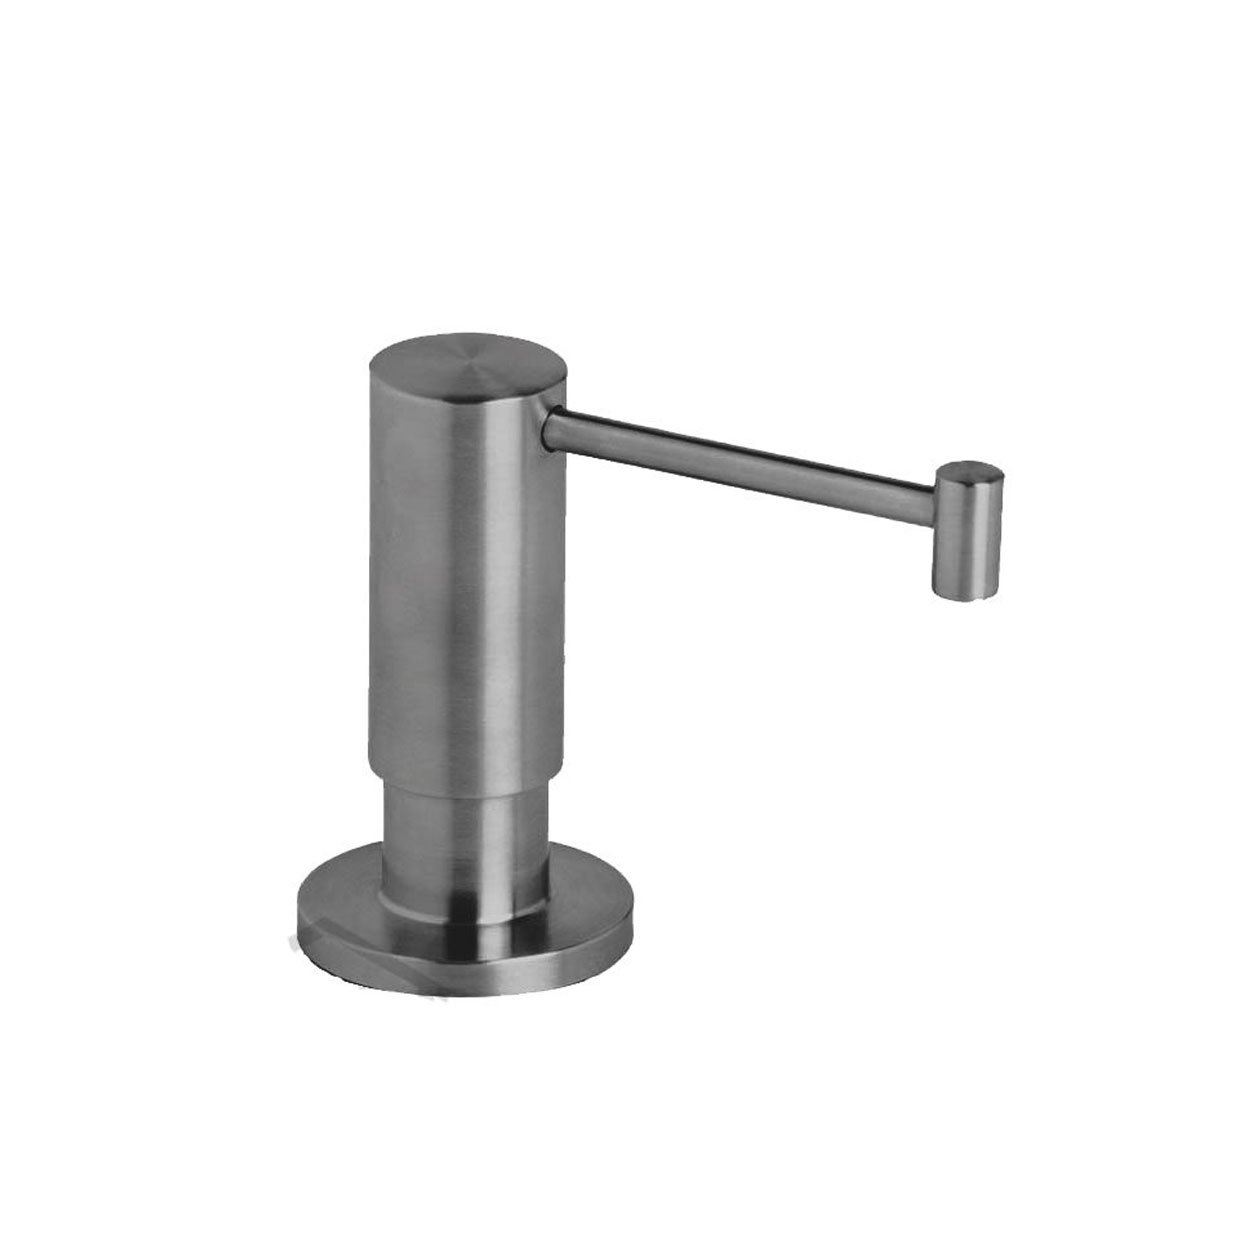 Waterstone 4065-SS Contemporary Soap Dispenser Deck Mount, Solid Stainless Steel by Waterstone B00FOP624O